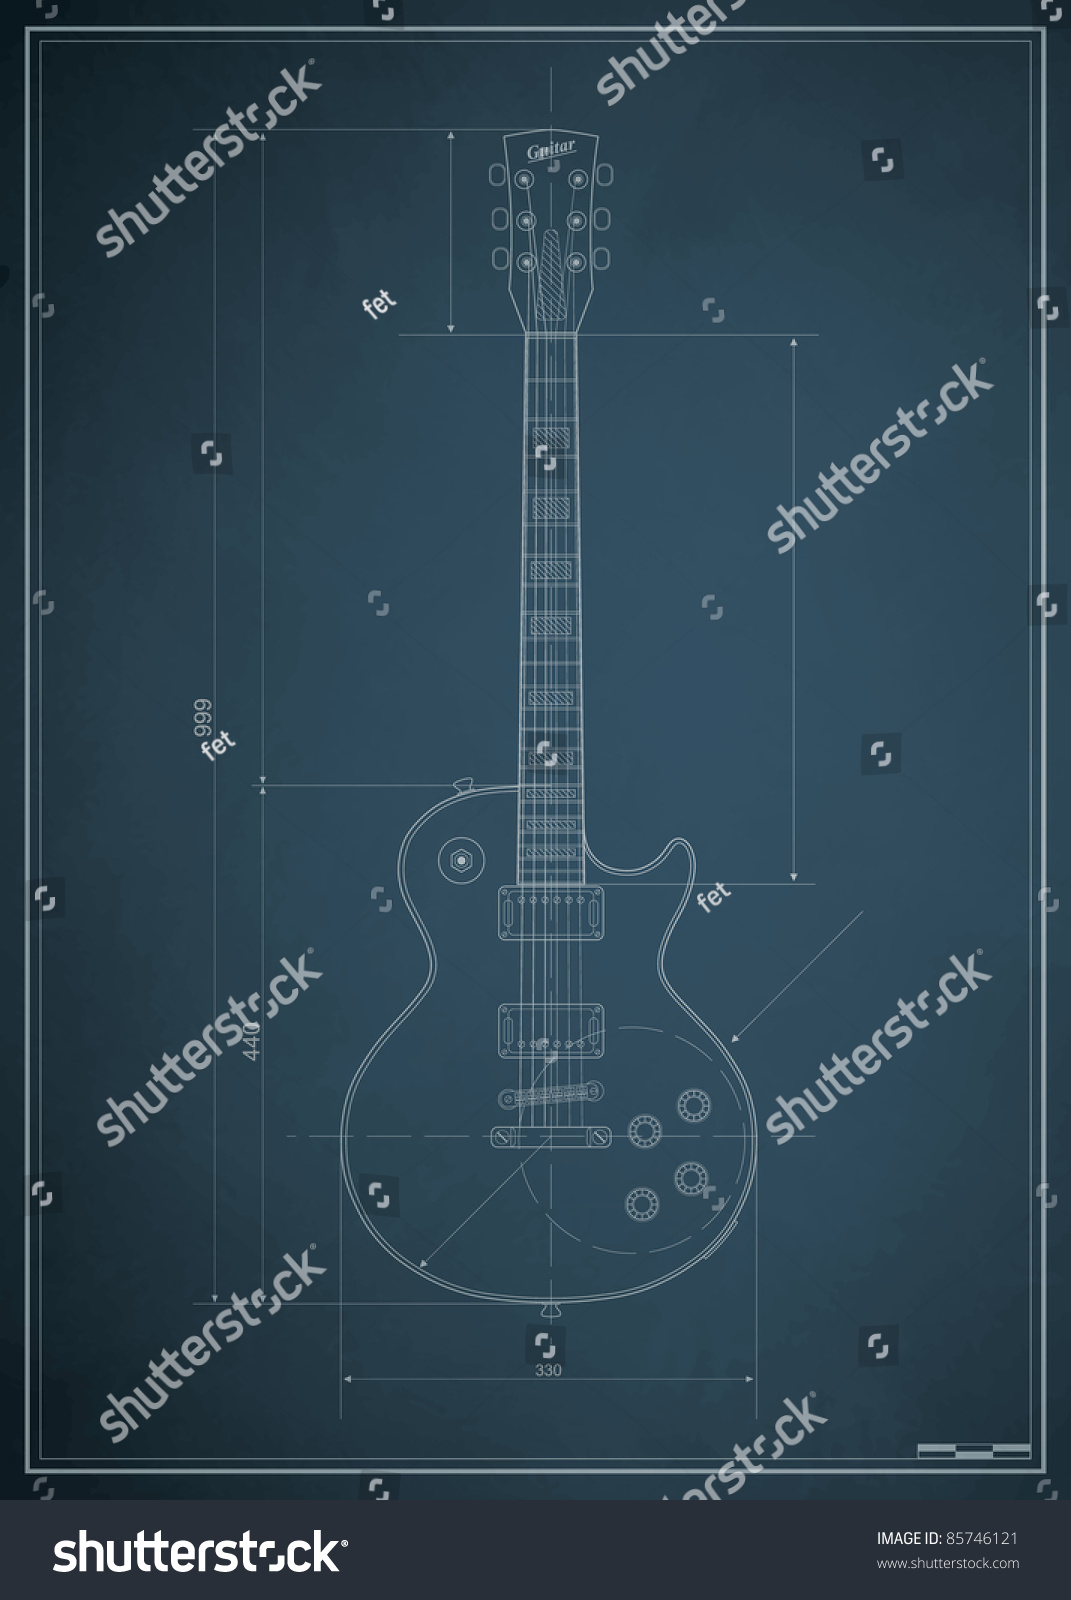 Blueprint Electric Guitar Dimensions On Paper Stock Vector 85746121 ...